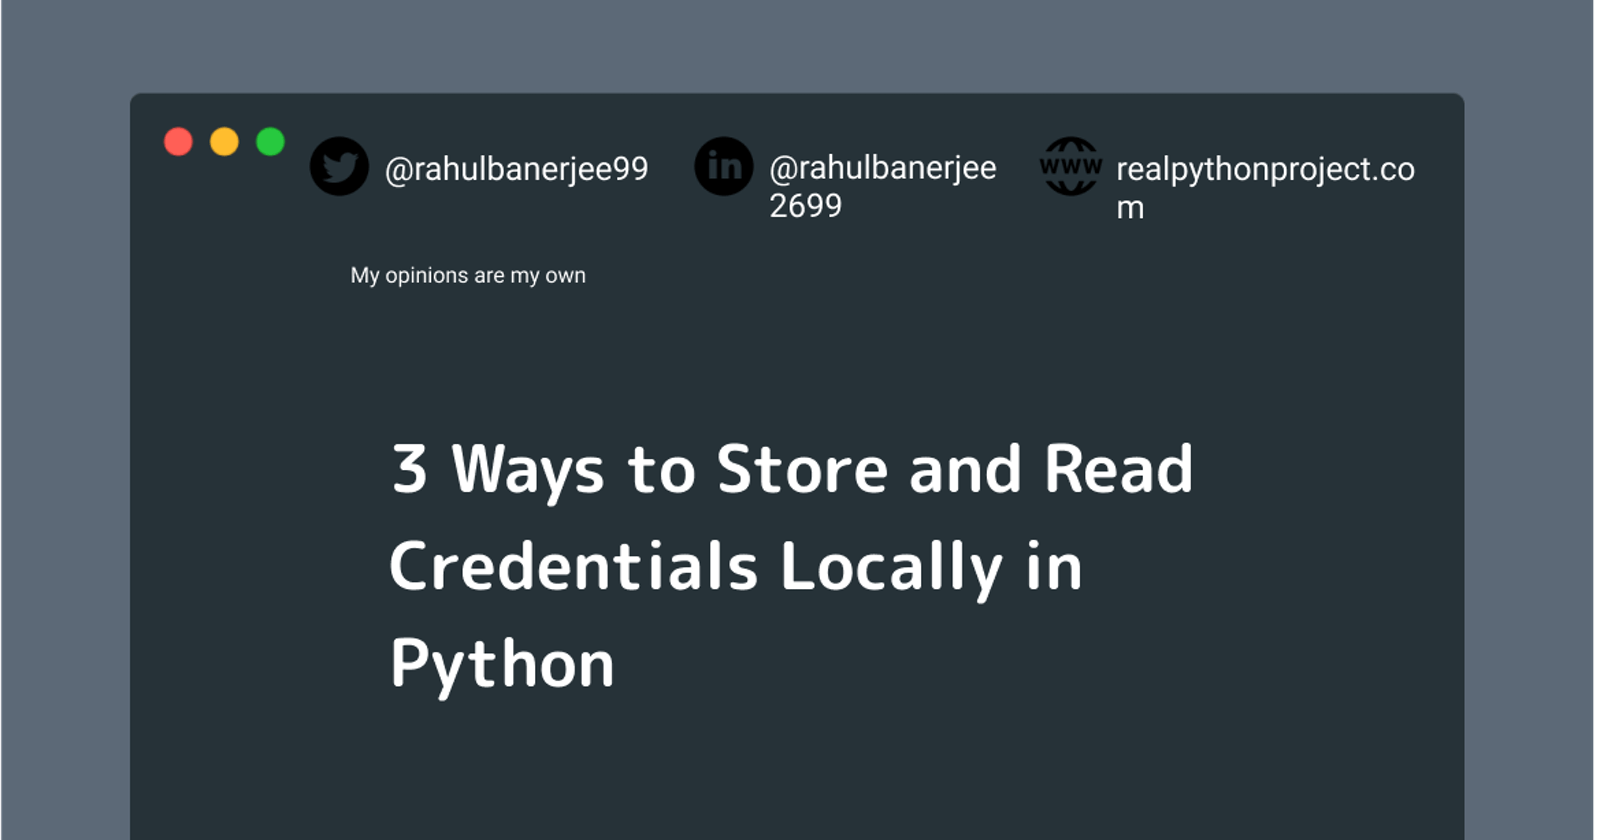 3 Ways to Store and Read Credentials Locally in Python